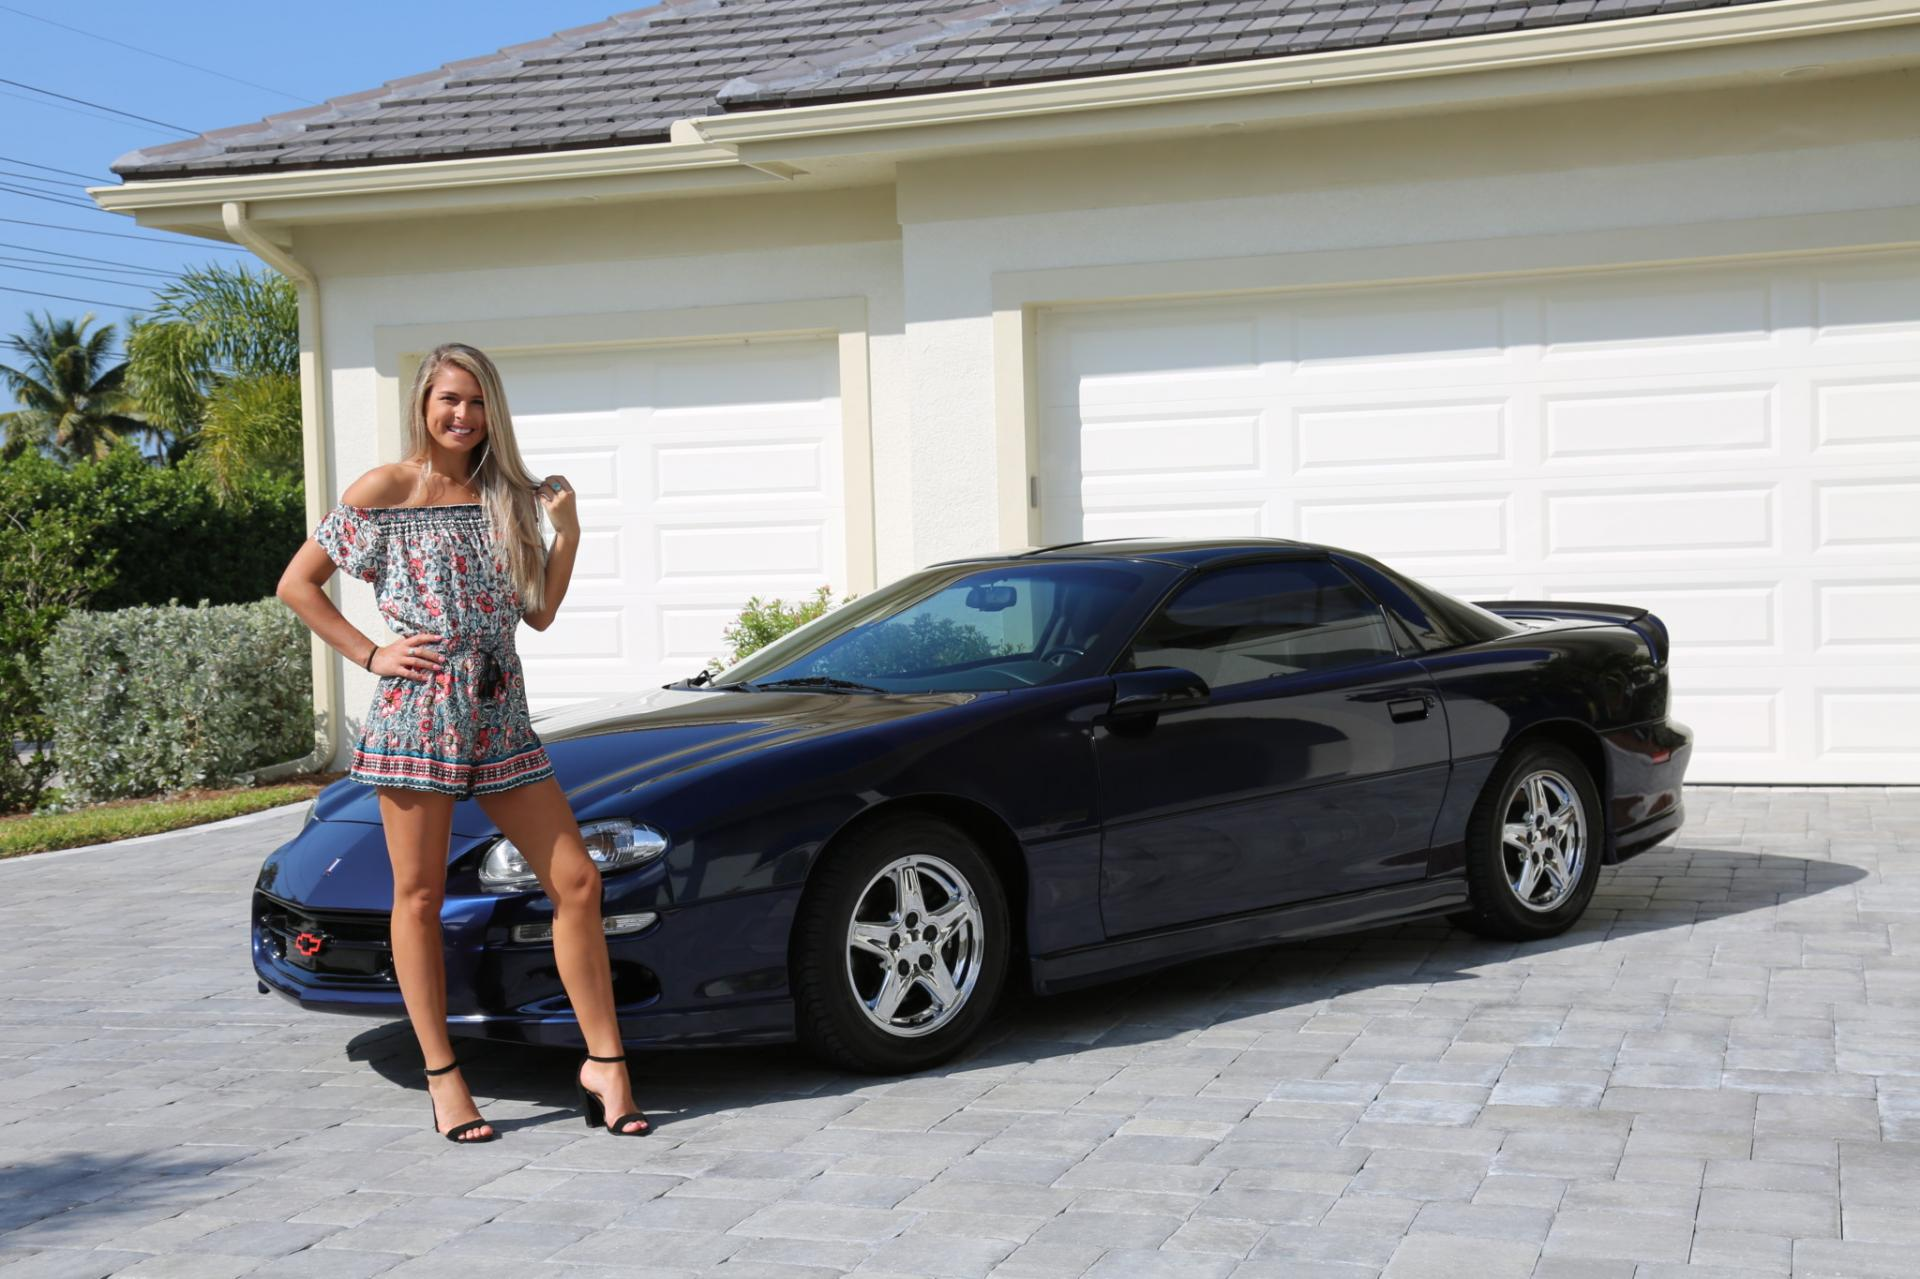 Used 1999 Chevrolet Camaro for sale $16,500 at Muscle Cars for Sale Inc. in Fort Myers FL 33912 2